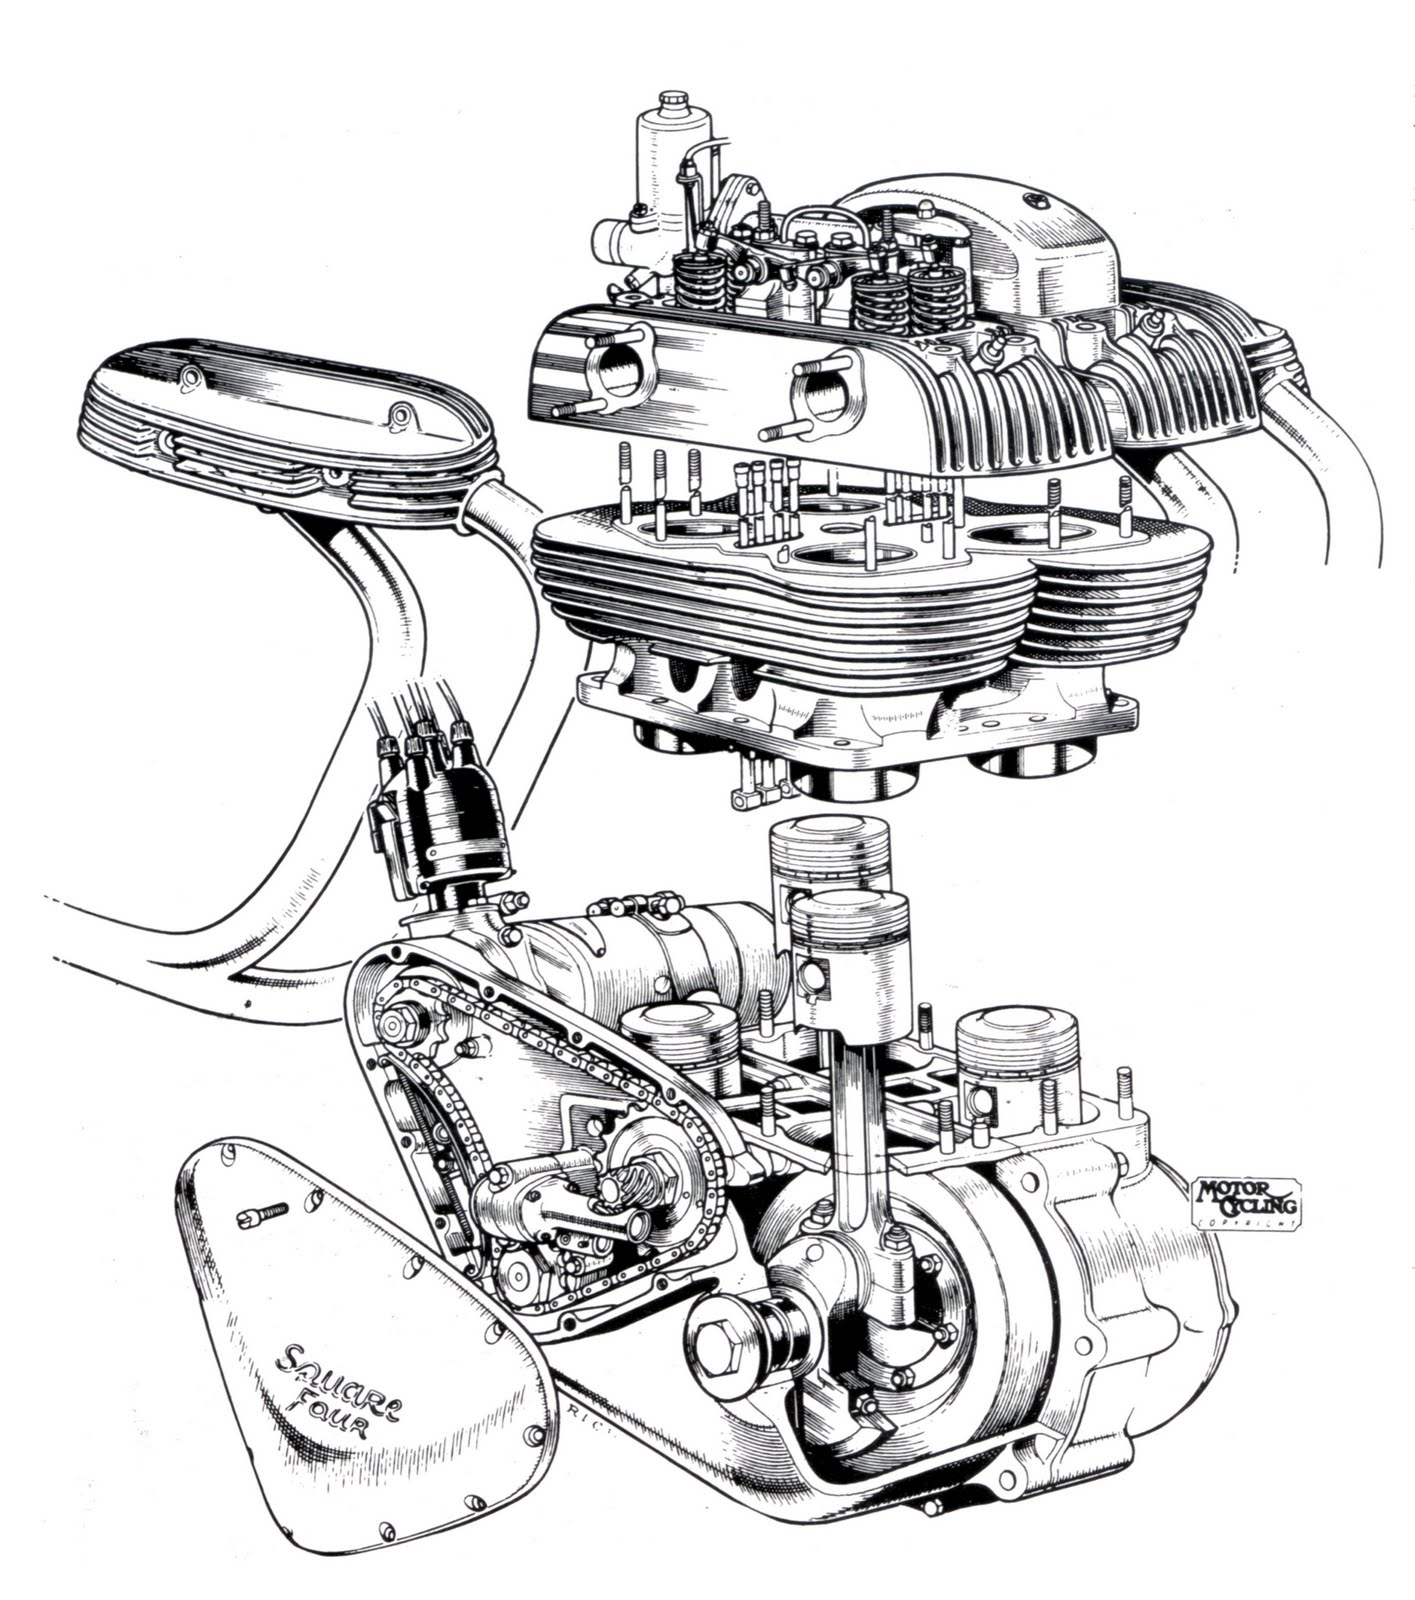 Ariel Square Four cool engine cutaway drawing